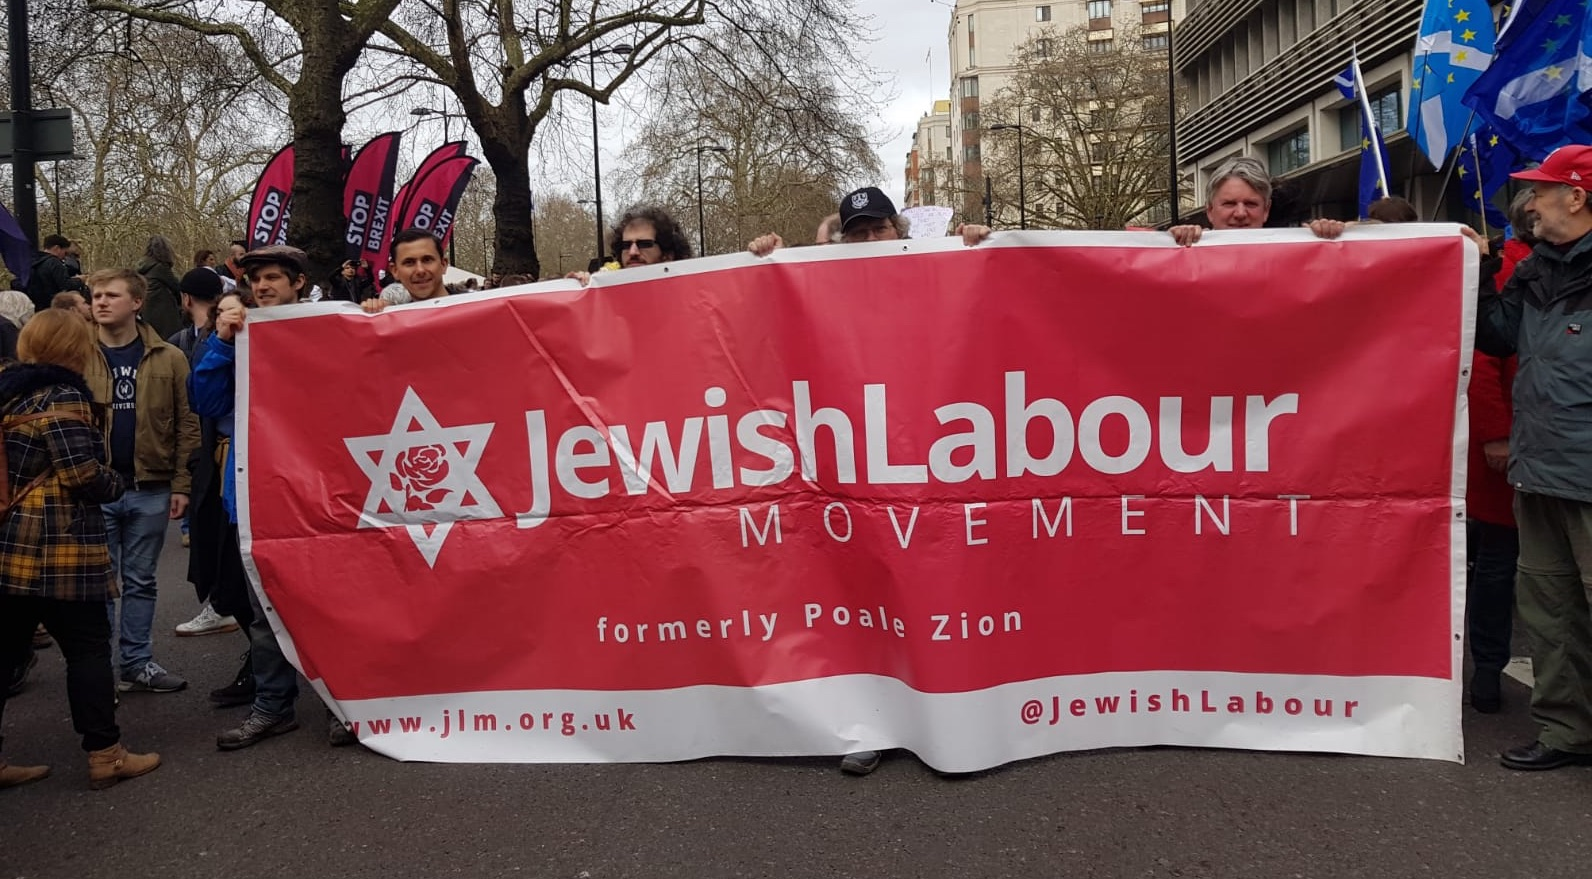 Supporting Labour values|The Jewish Labour Movement is a membership organisation of Labour supporting members of the Jewish Community and a formal affiliate of the Labour Party in the Uk since 1920